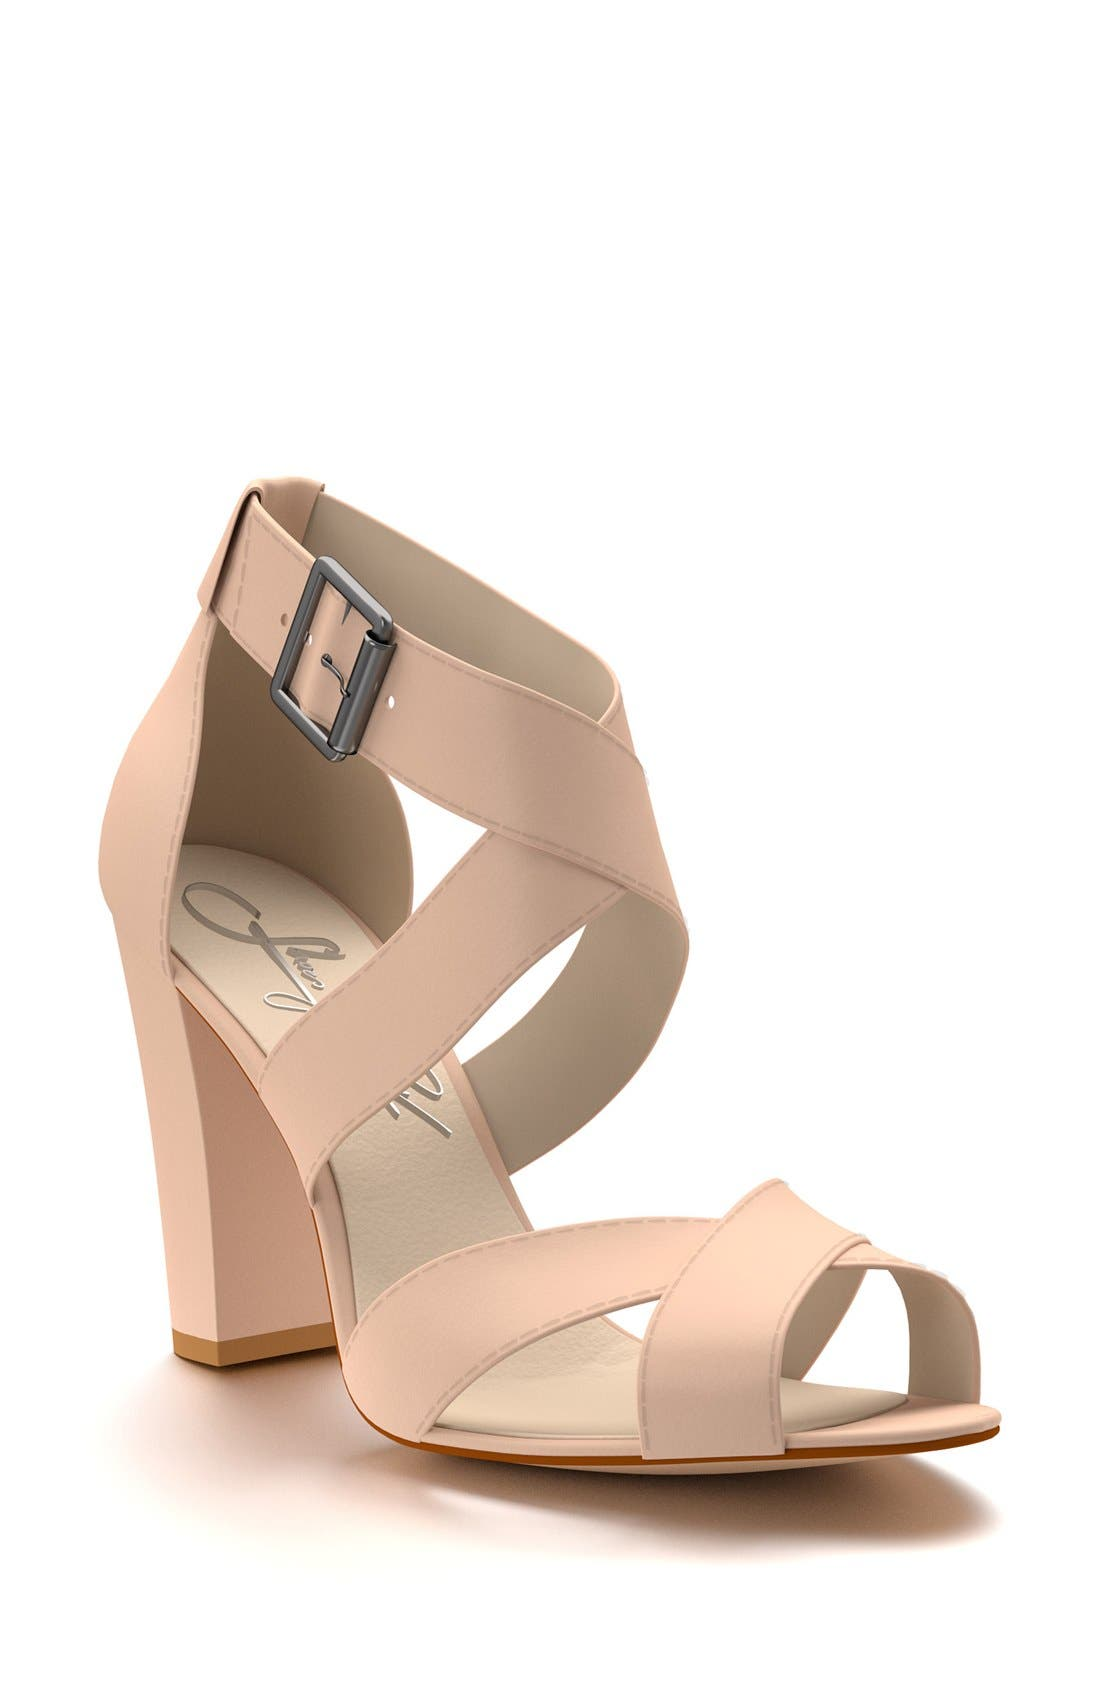 Shoes Of Prey Crisscross Strap Block Heel Sandal Women